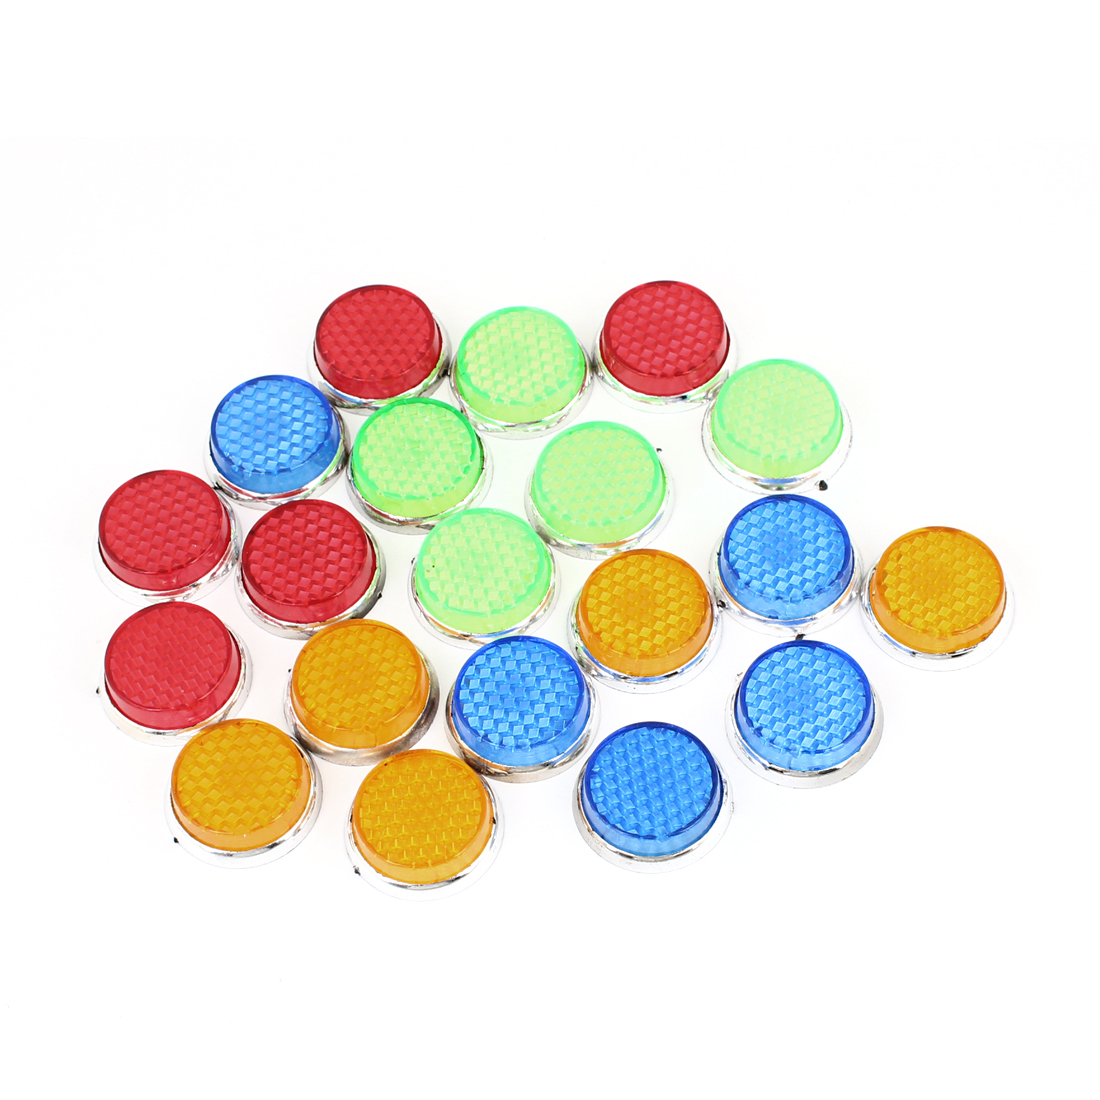 20 Pcs Assorted Color Plastic Rounded Sticker Decals for Car